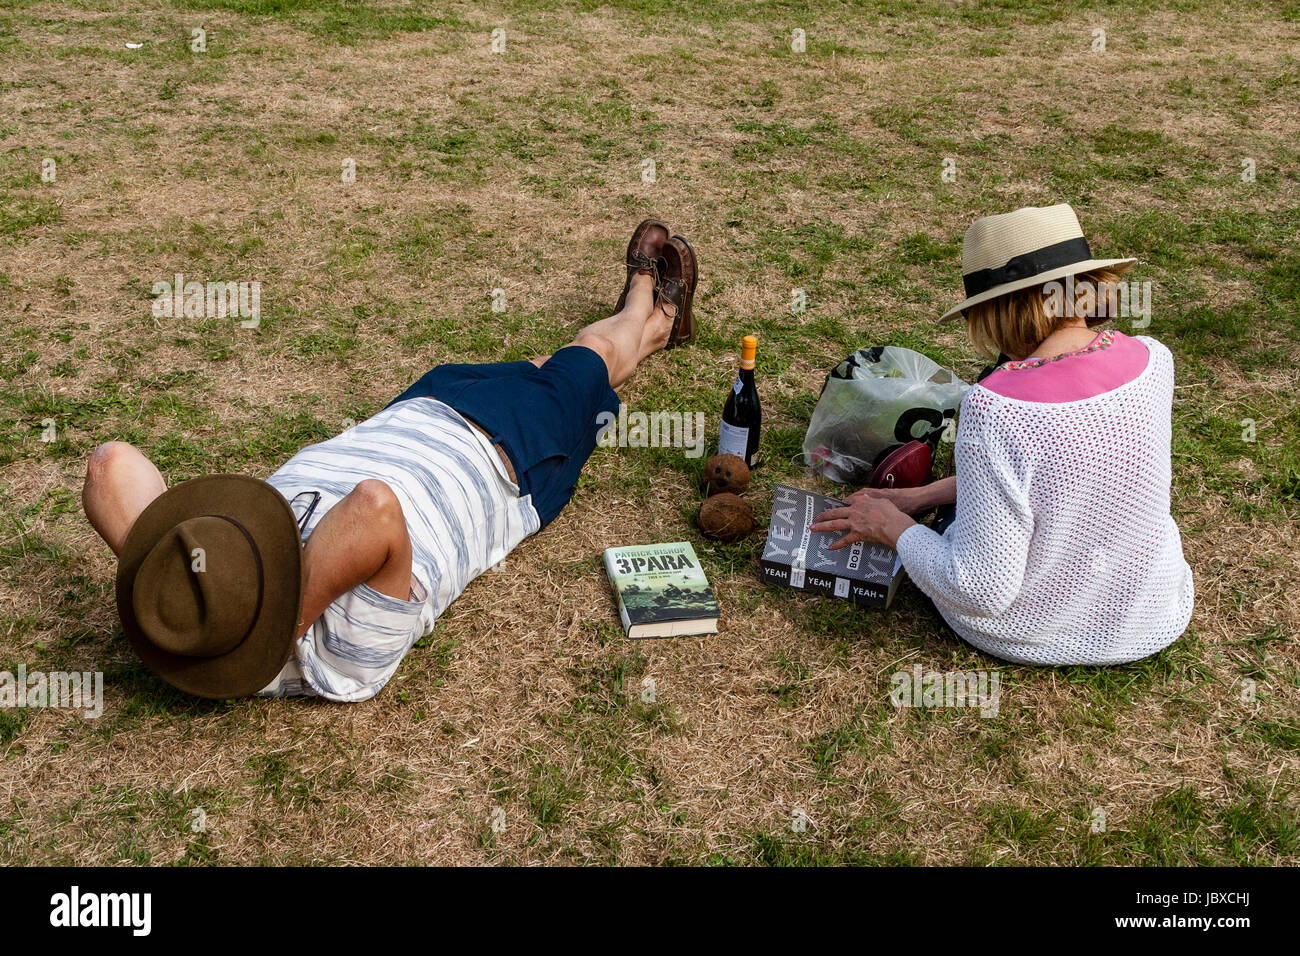 A Couple Relax On The Rectory Field At The Jevington Fete, Jevington, East Sussex, UK - Stock Image